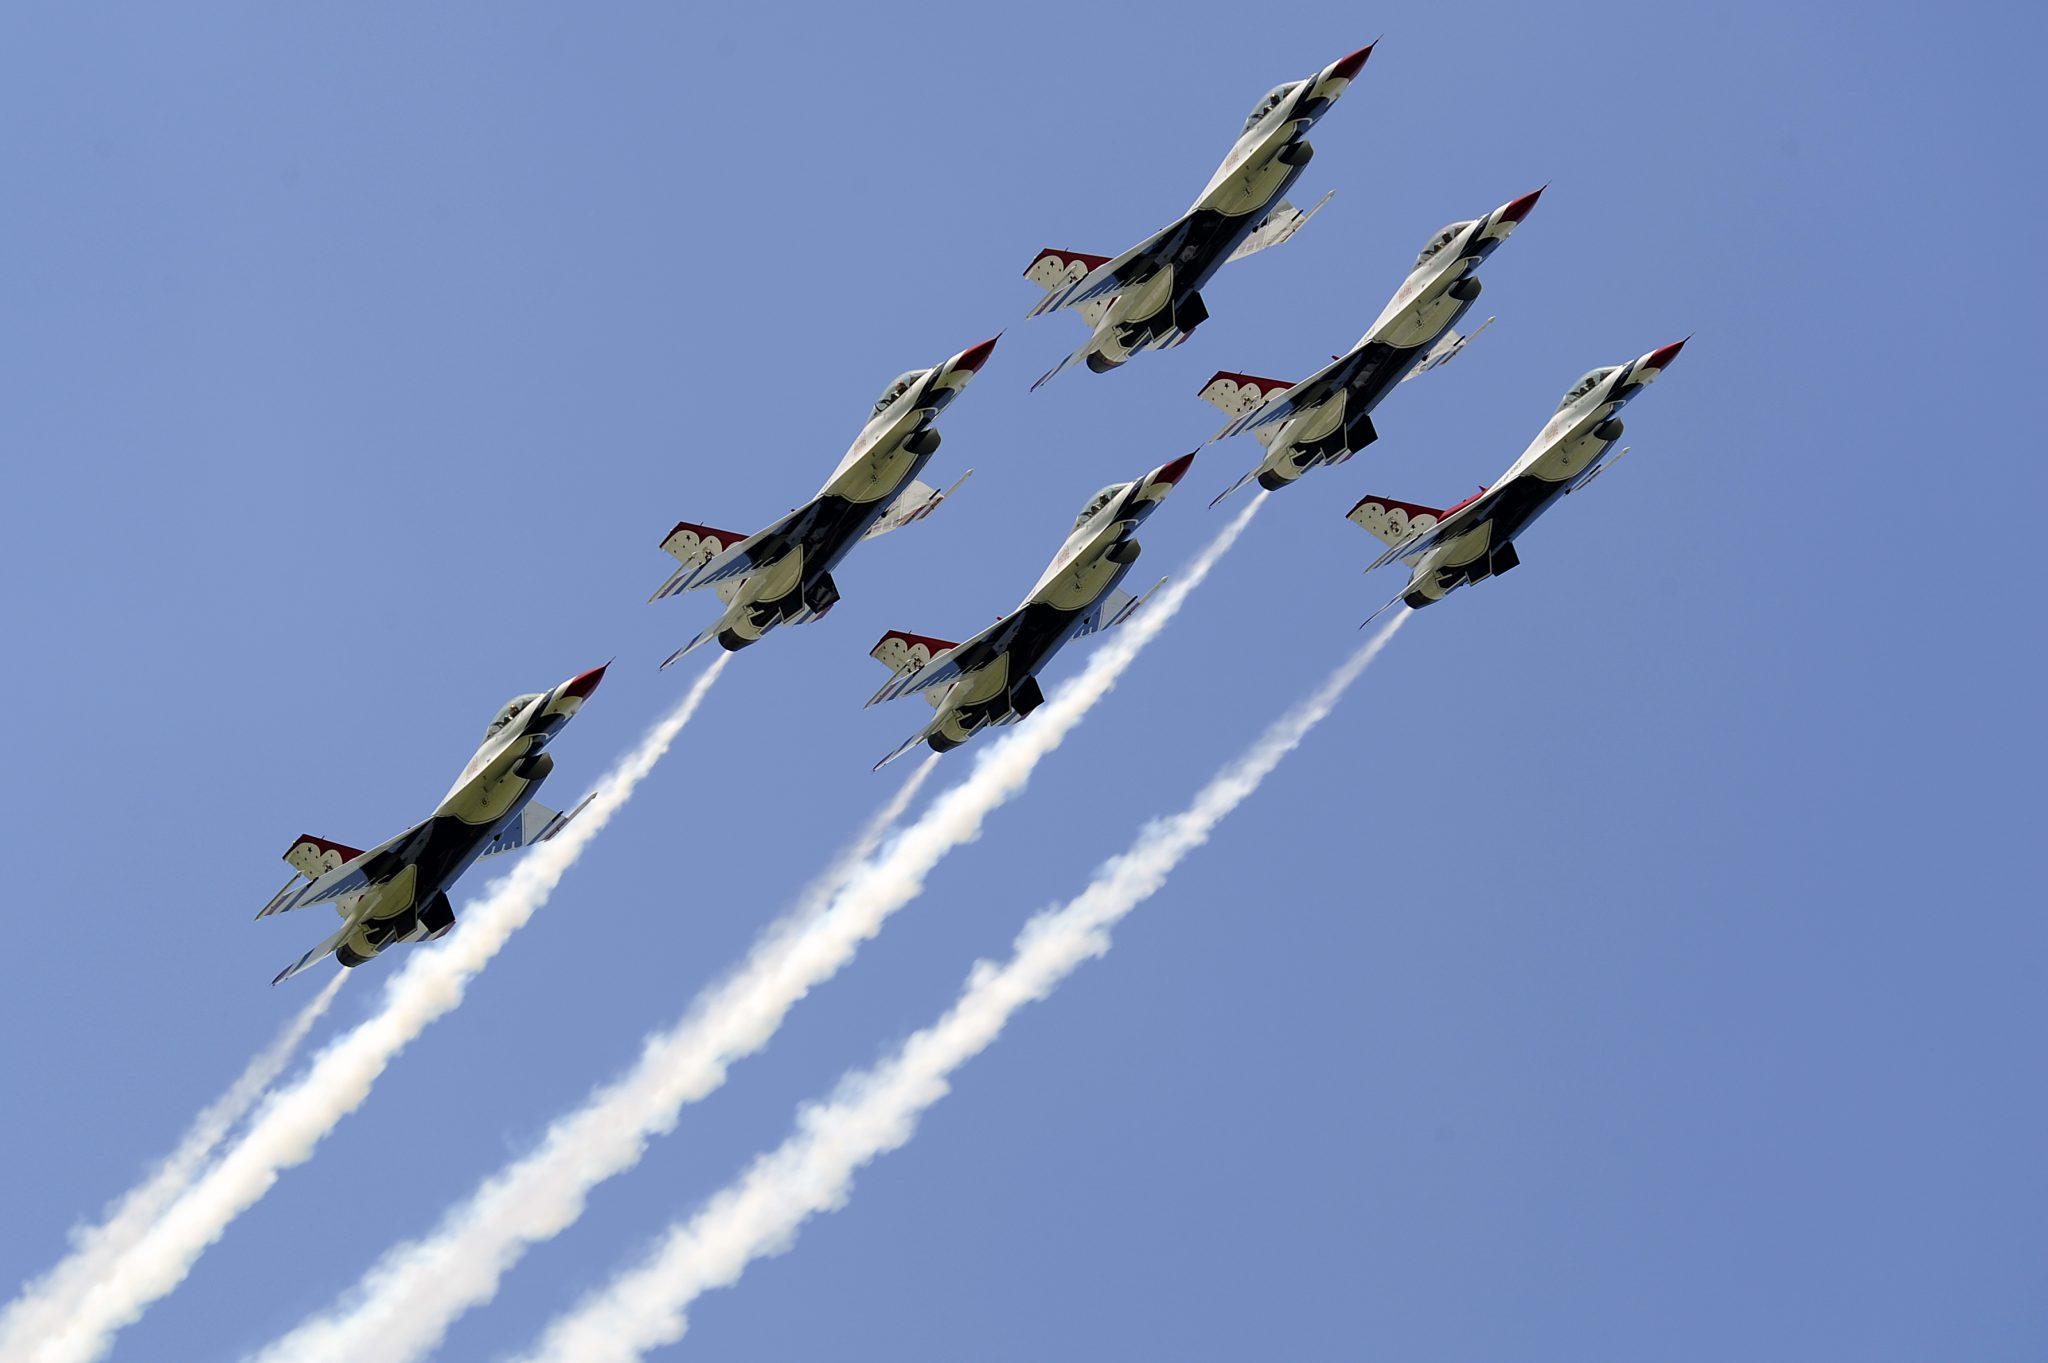 Thunderbirds to Headline 2019 STIHL National Championship Air Races